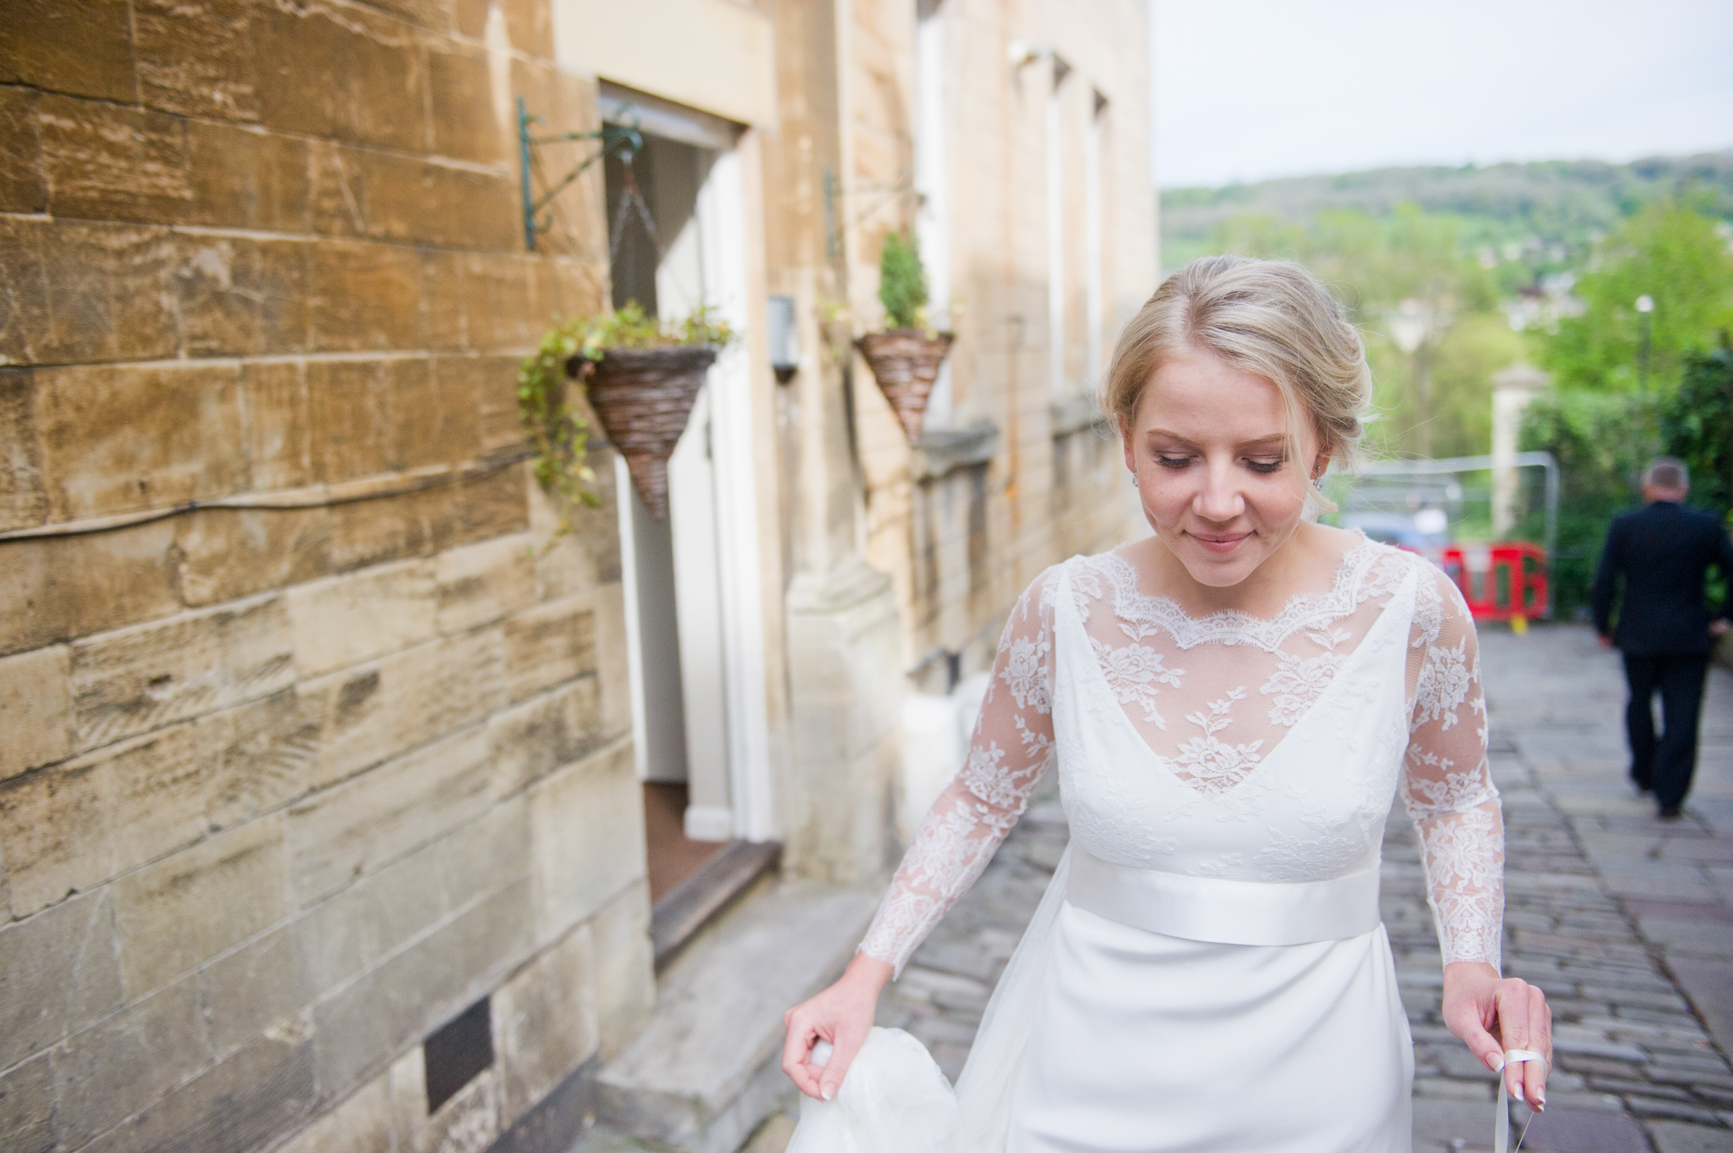 Rosie on exiting the prep venue. You can see in the background the beautiful sandstone of the buildings and the stunning backdrop of the Bath countryside beyond. Rosie is wearing Lace and a cheeky smile.